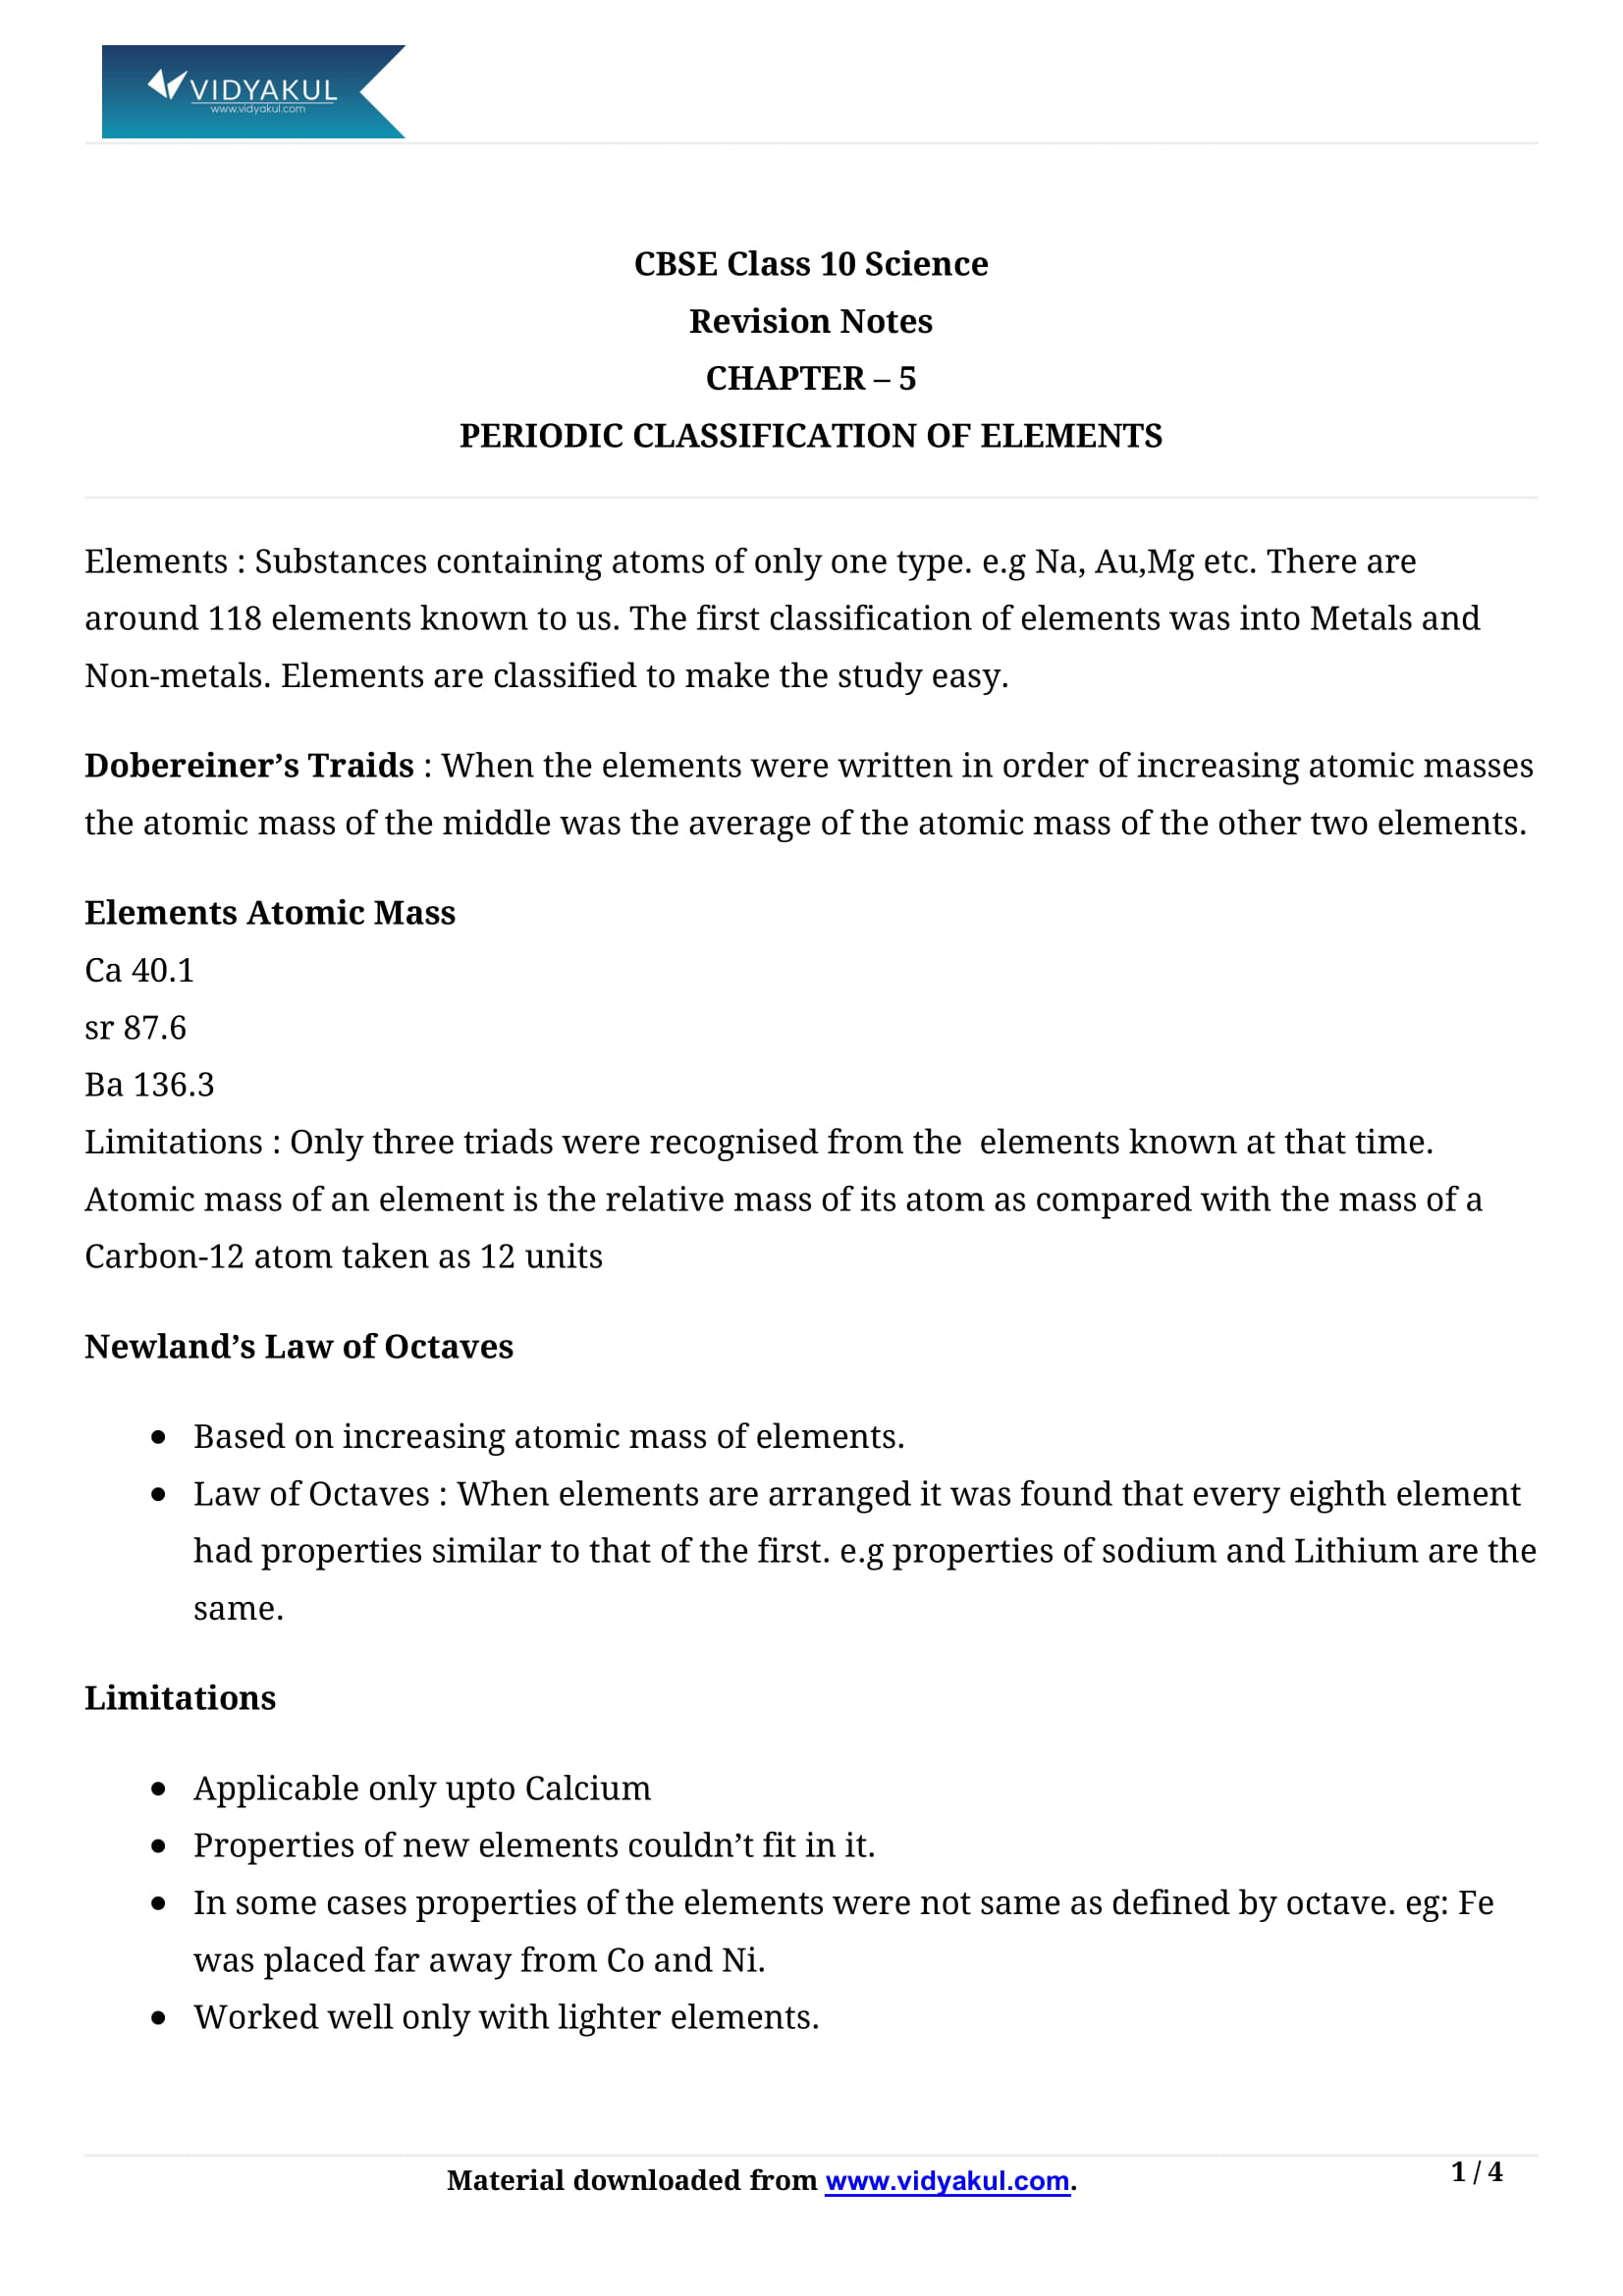 Periodic Classification of Elements Class 10 Notes | Vidyakul